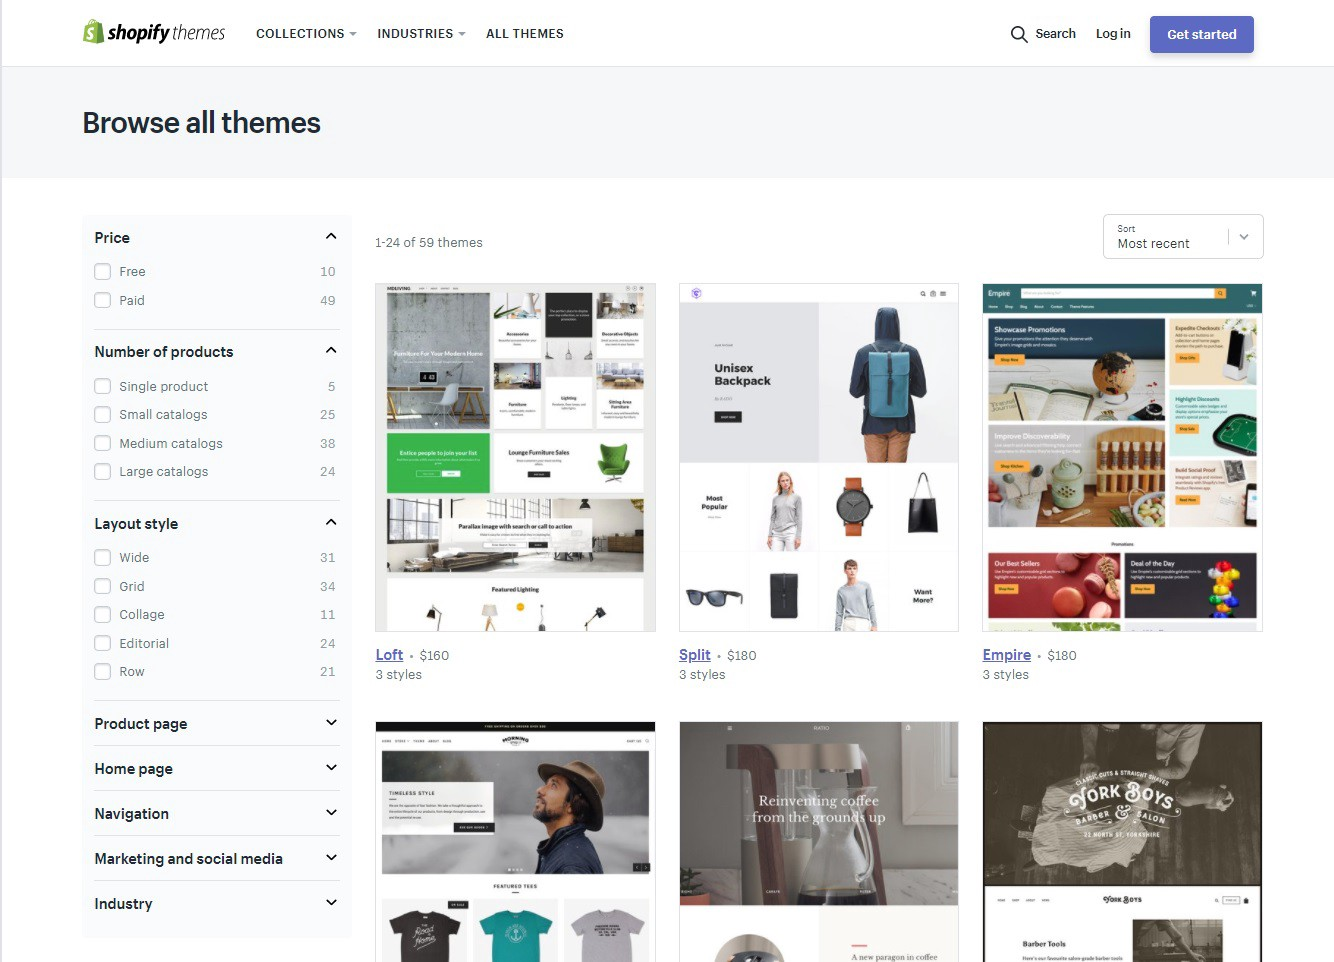 How to Find a Theme for your Shopify Store